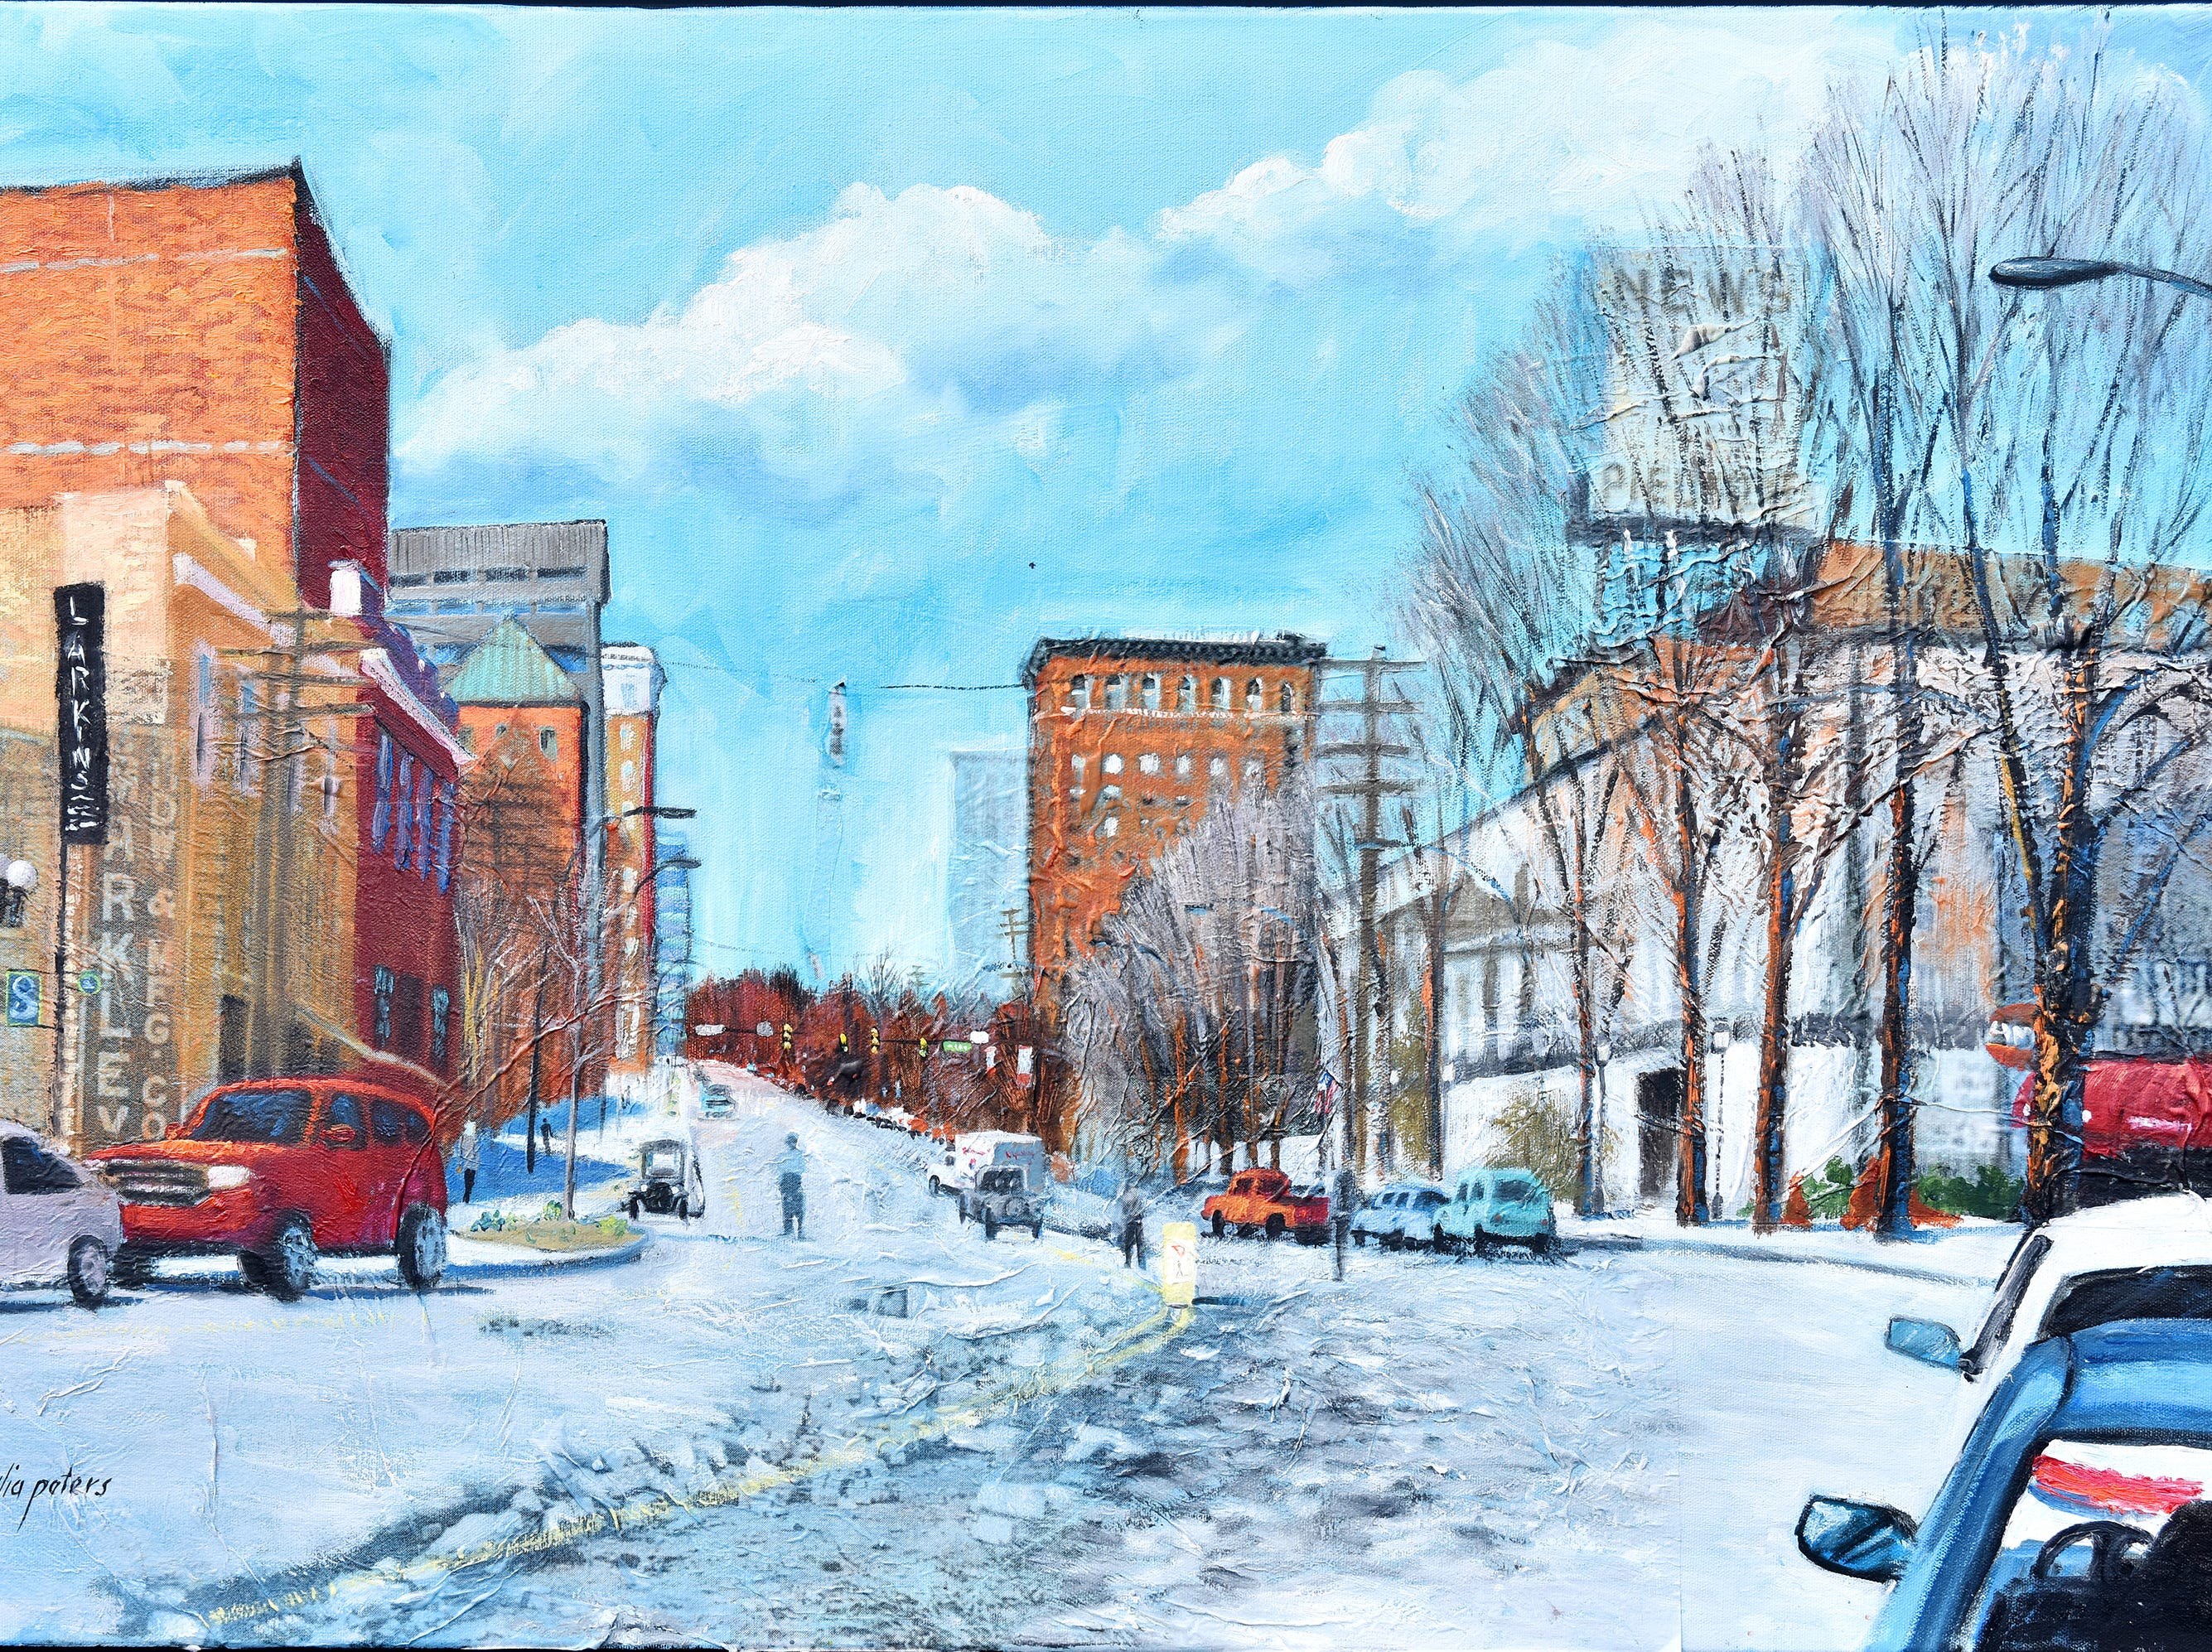 South Main, circa 1900-2013, oil painting by Julia Peters